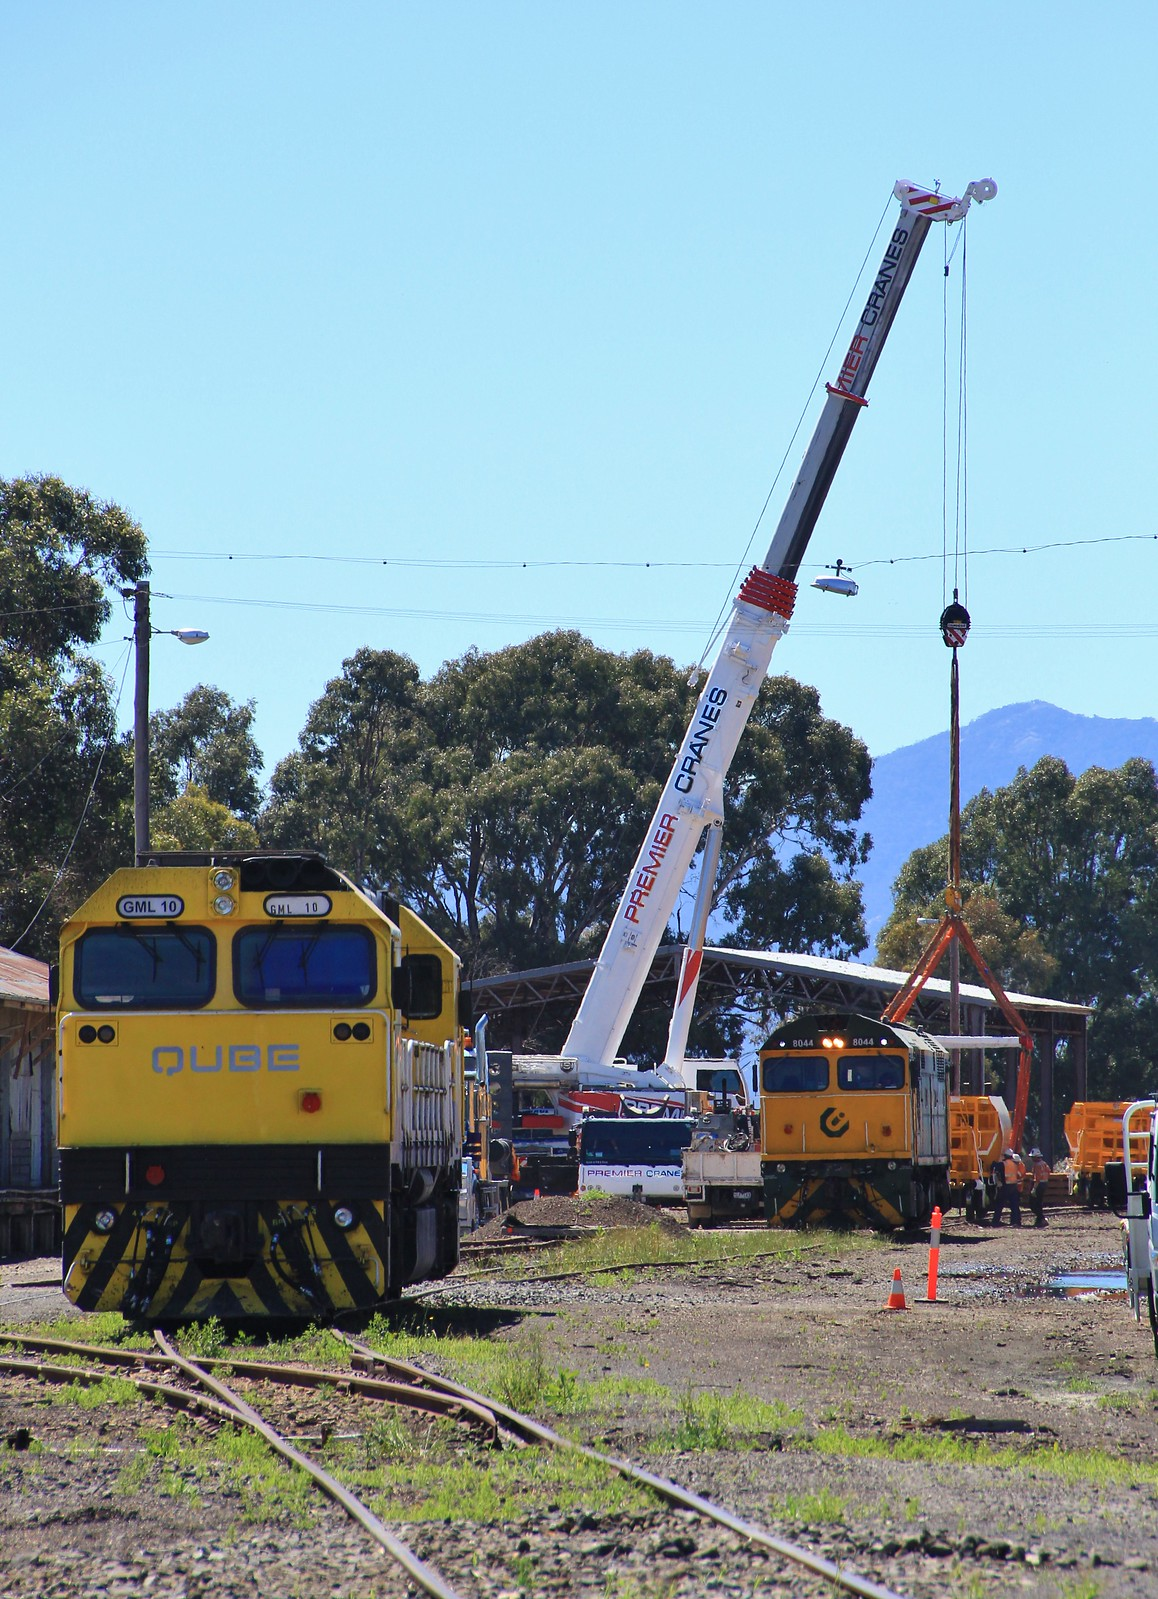 GML10 and 8044 sit in Ararat yard as ballast wagons are loaded onto trucks to be taken to Avoca by bukk05